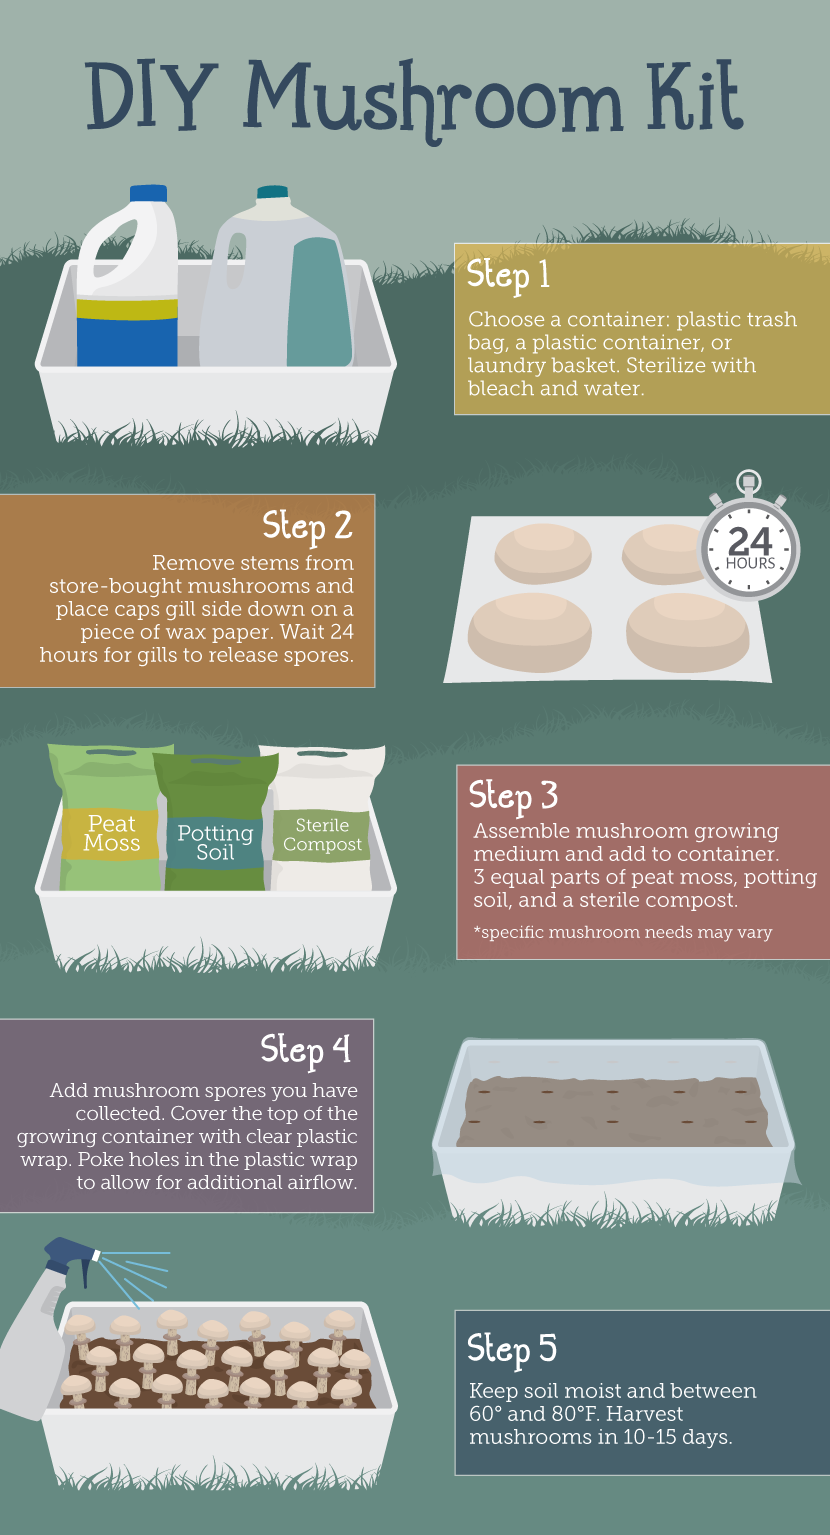 Home garden kit  Grow Your Own Mushrooms at Home  Garden  Pinterest  Growing